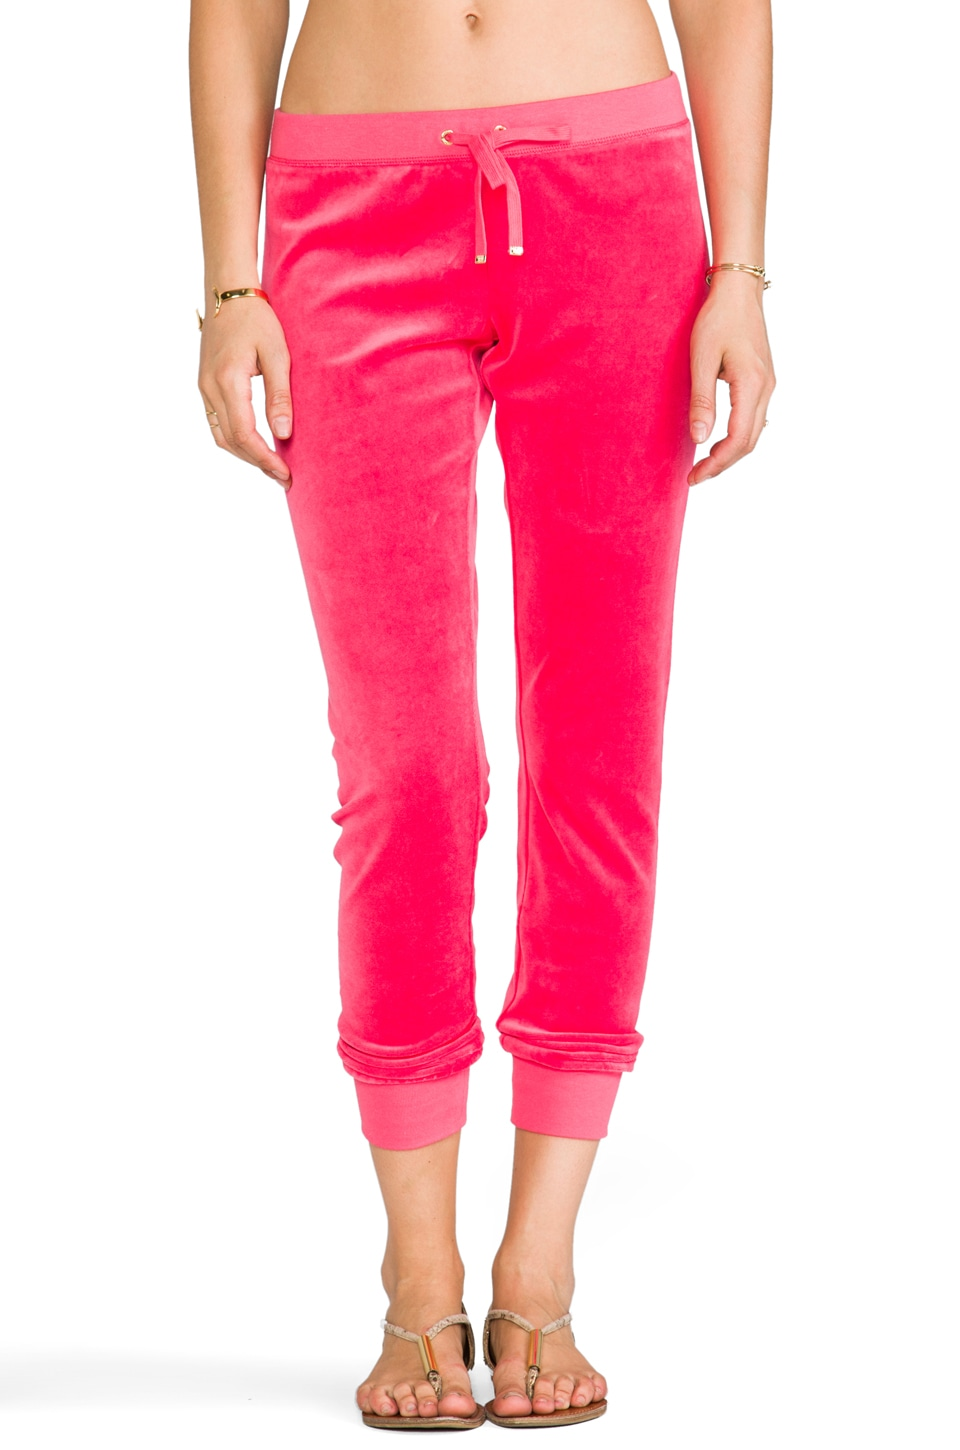 Juicy Couture J Bling Slim Comfy Pant in Geranium